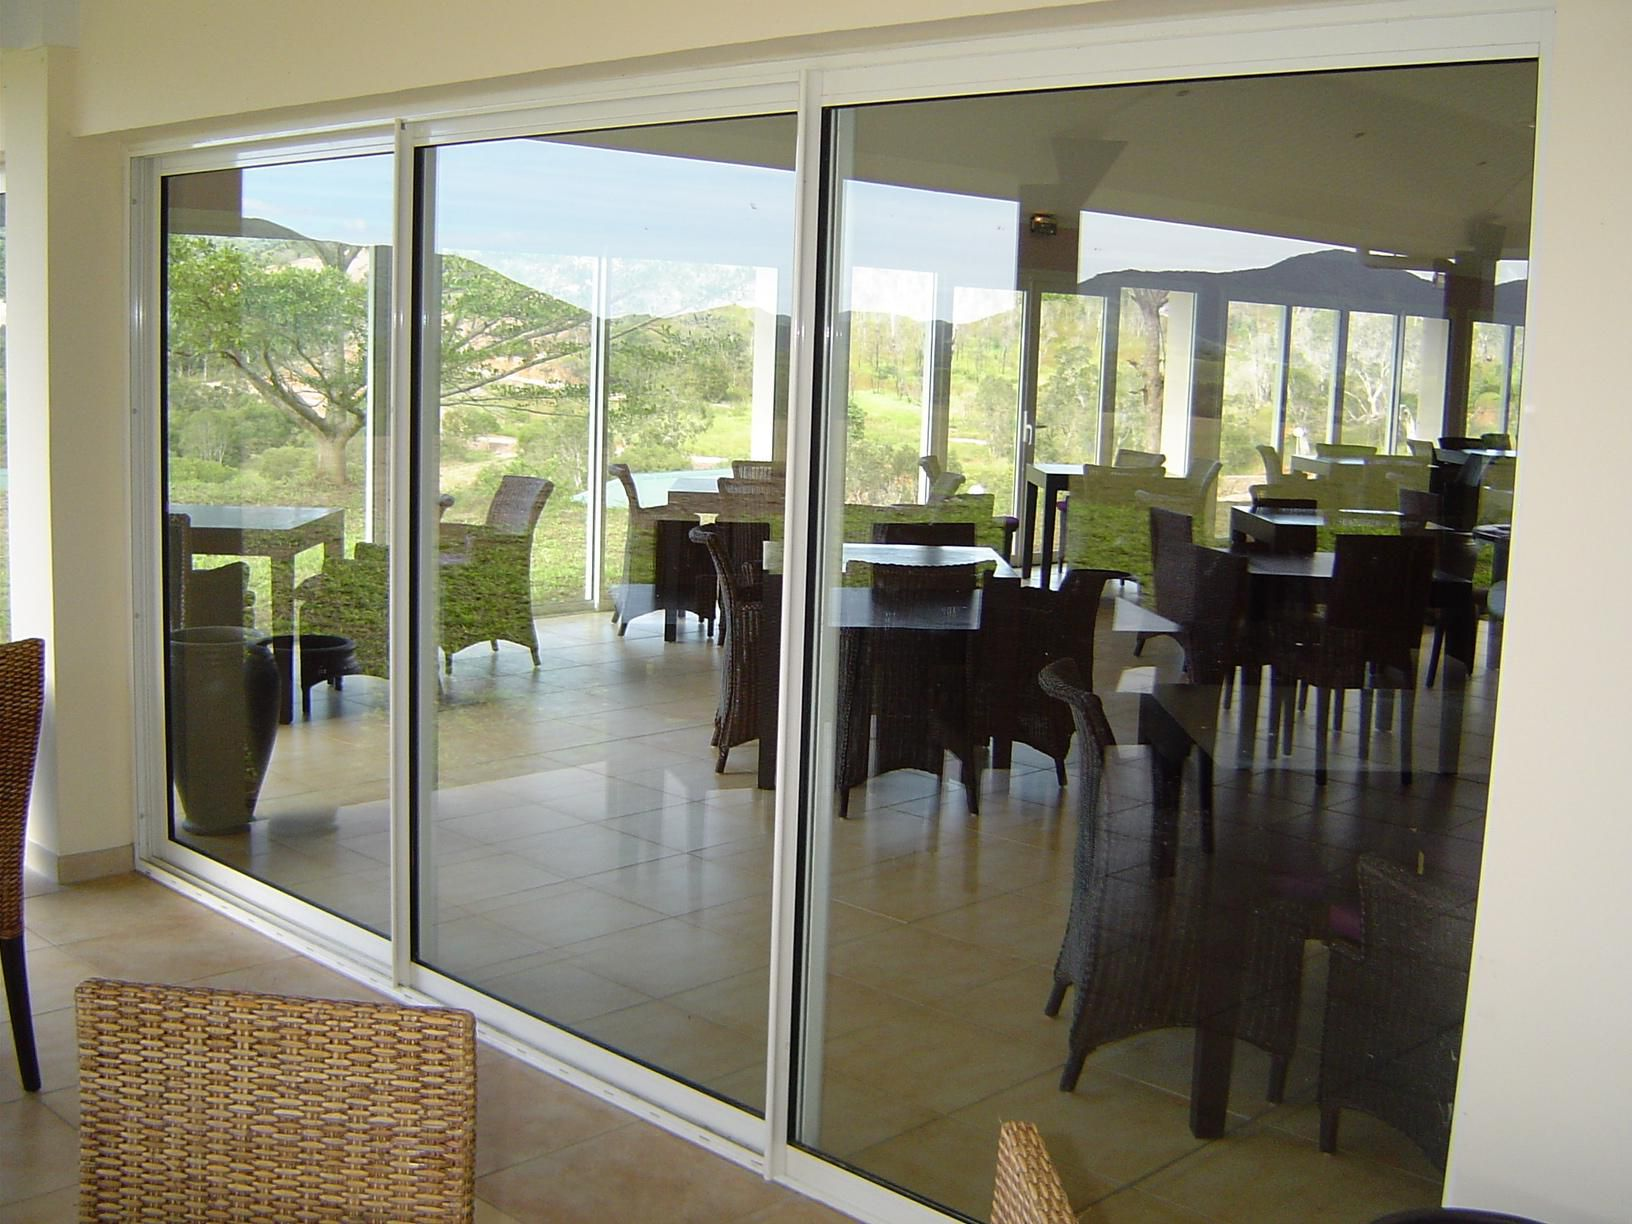 White sliding aluminum door with a large glass for the dining room in the hotel